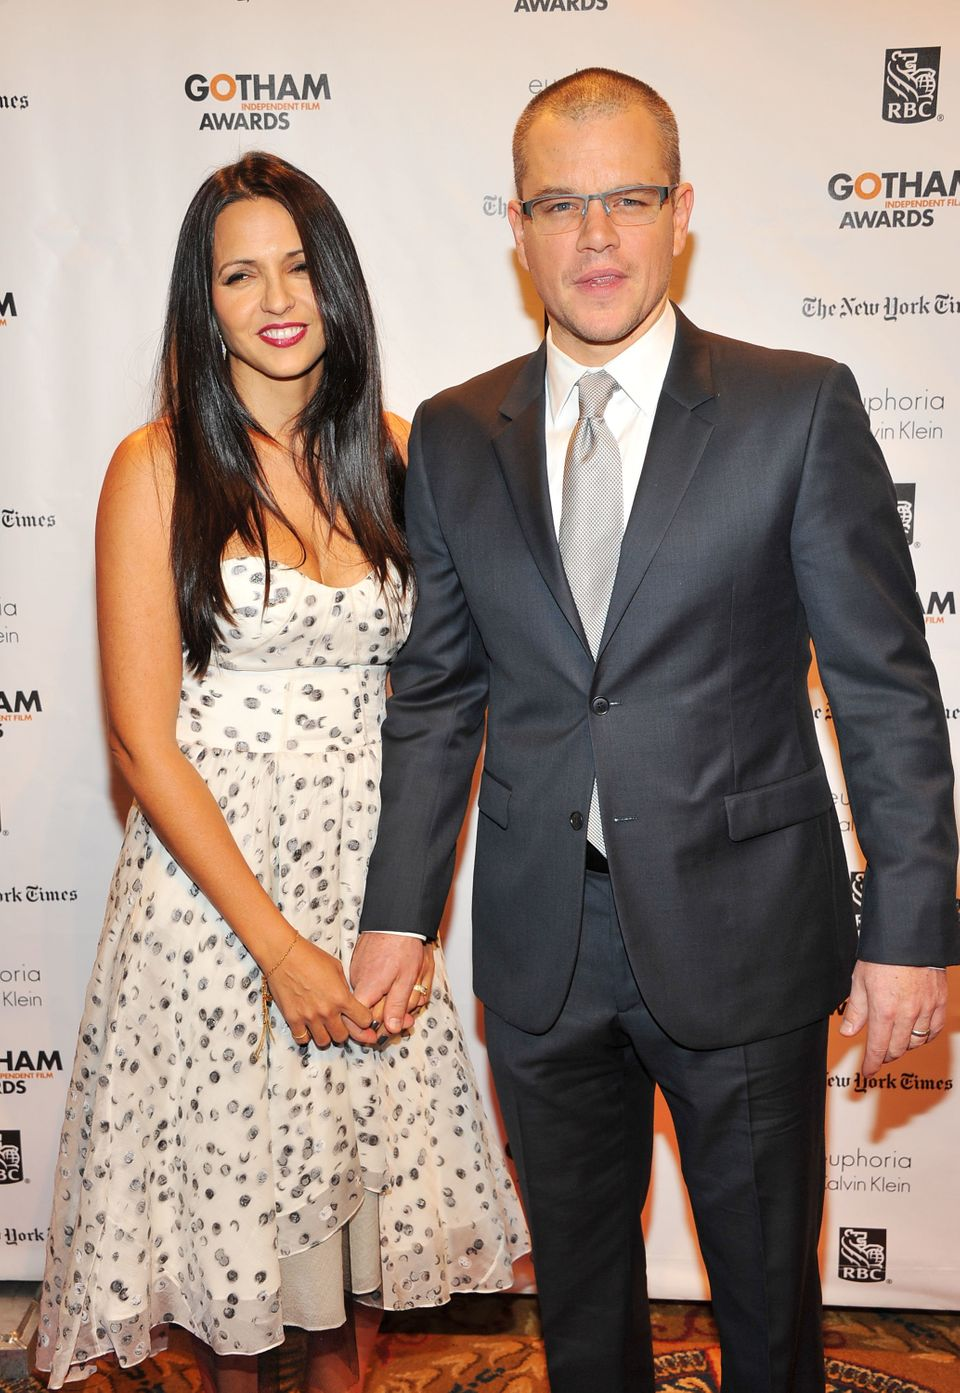 Matt Damon and Luciana Barroso, a former bartender, married in 2005 and have four daughters together (one is Barroso's from a